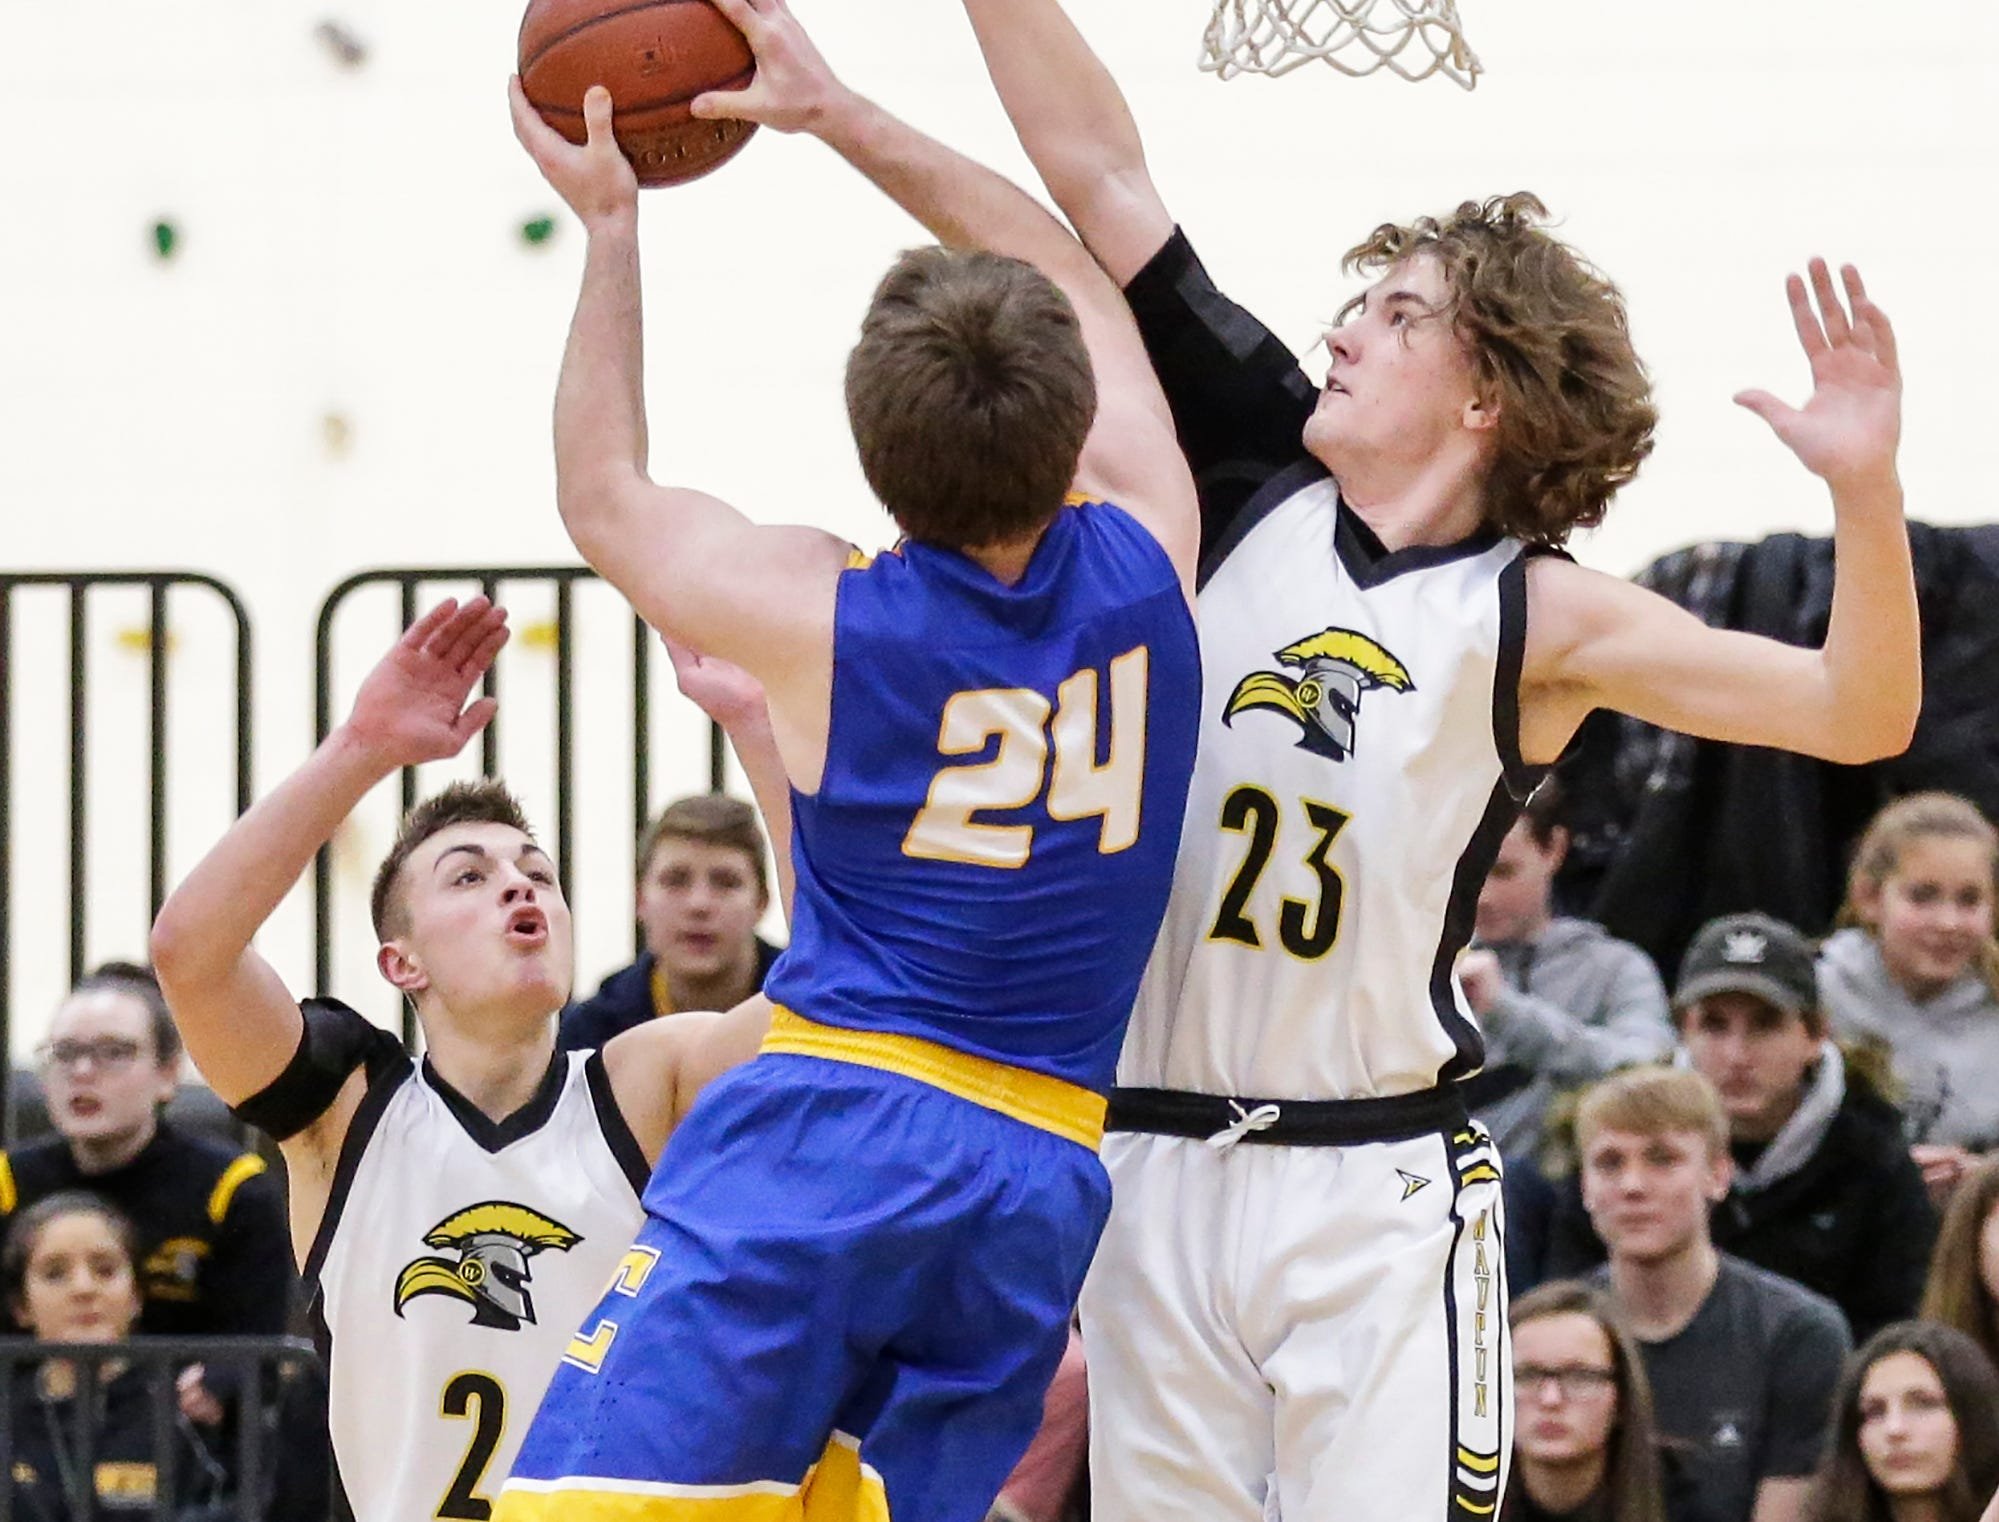 Waupun High School boys basketball's Reece Homan attempts to block a shot by Campbellsport High School's Nicholas Narges during their game Friday, December 14, 2018 in Waupun. Waupun won the game 64-33. Doug Raflik/USA TODAY NETWORK-Wisconsin